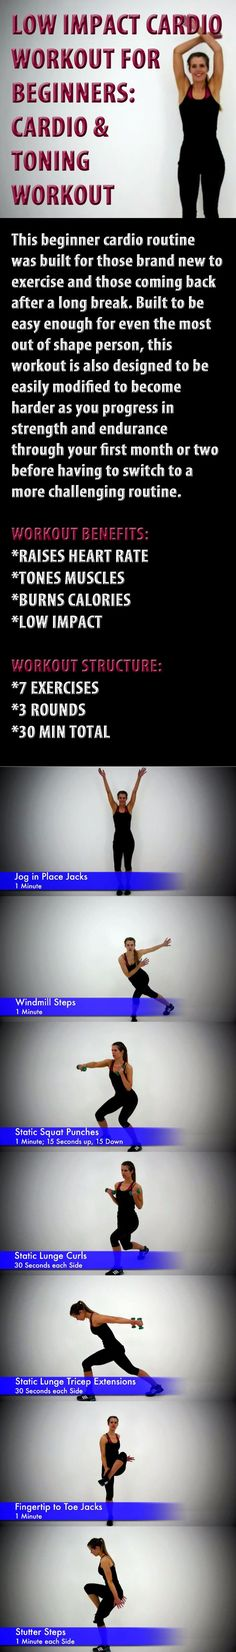 Low Impact Cardio Workout for Beginners - Beginner Cardio & Toning Workout Routine.